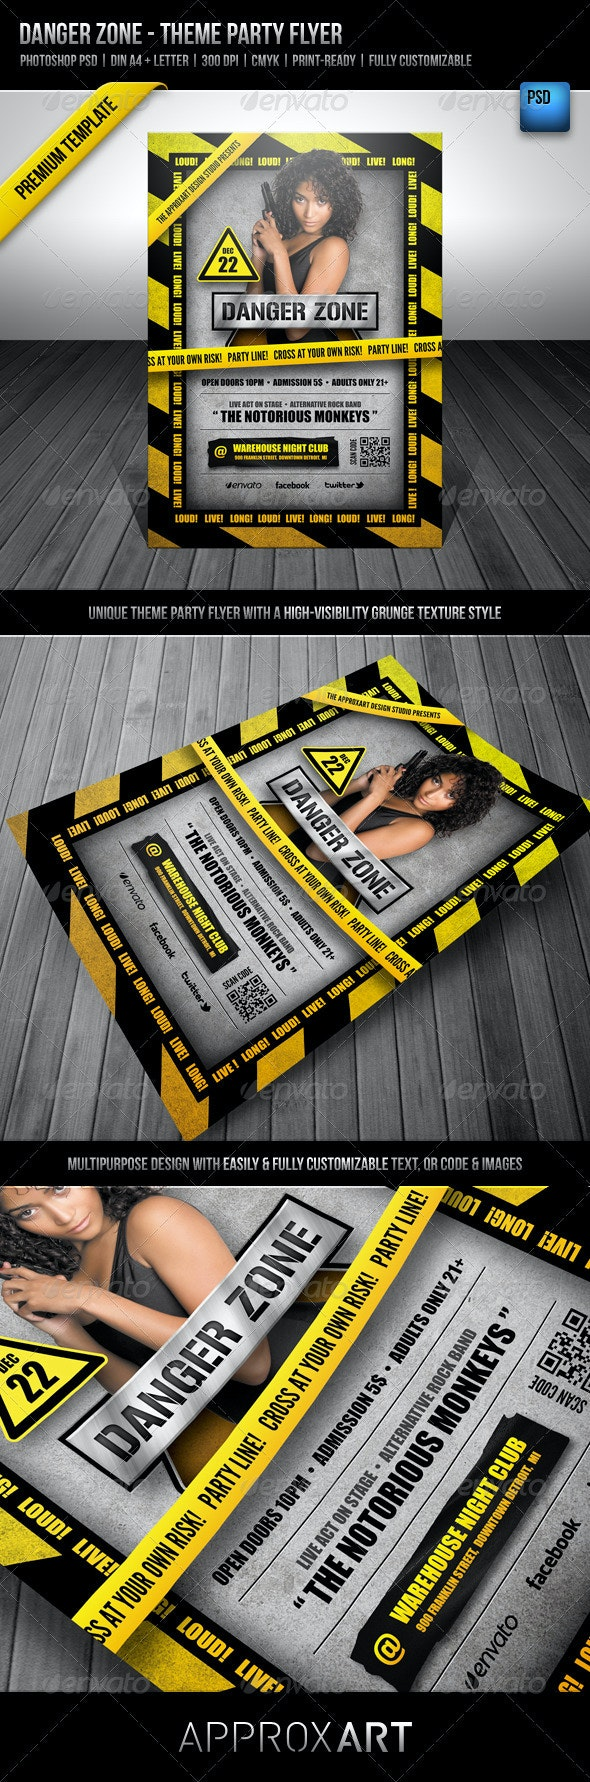 Danger Zone - Theme Party Flyer - Clubs & Parties Events